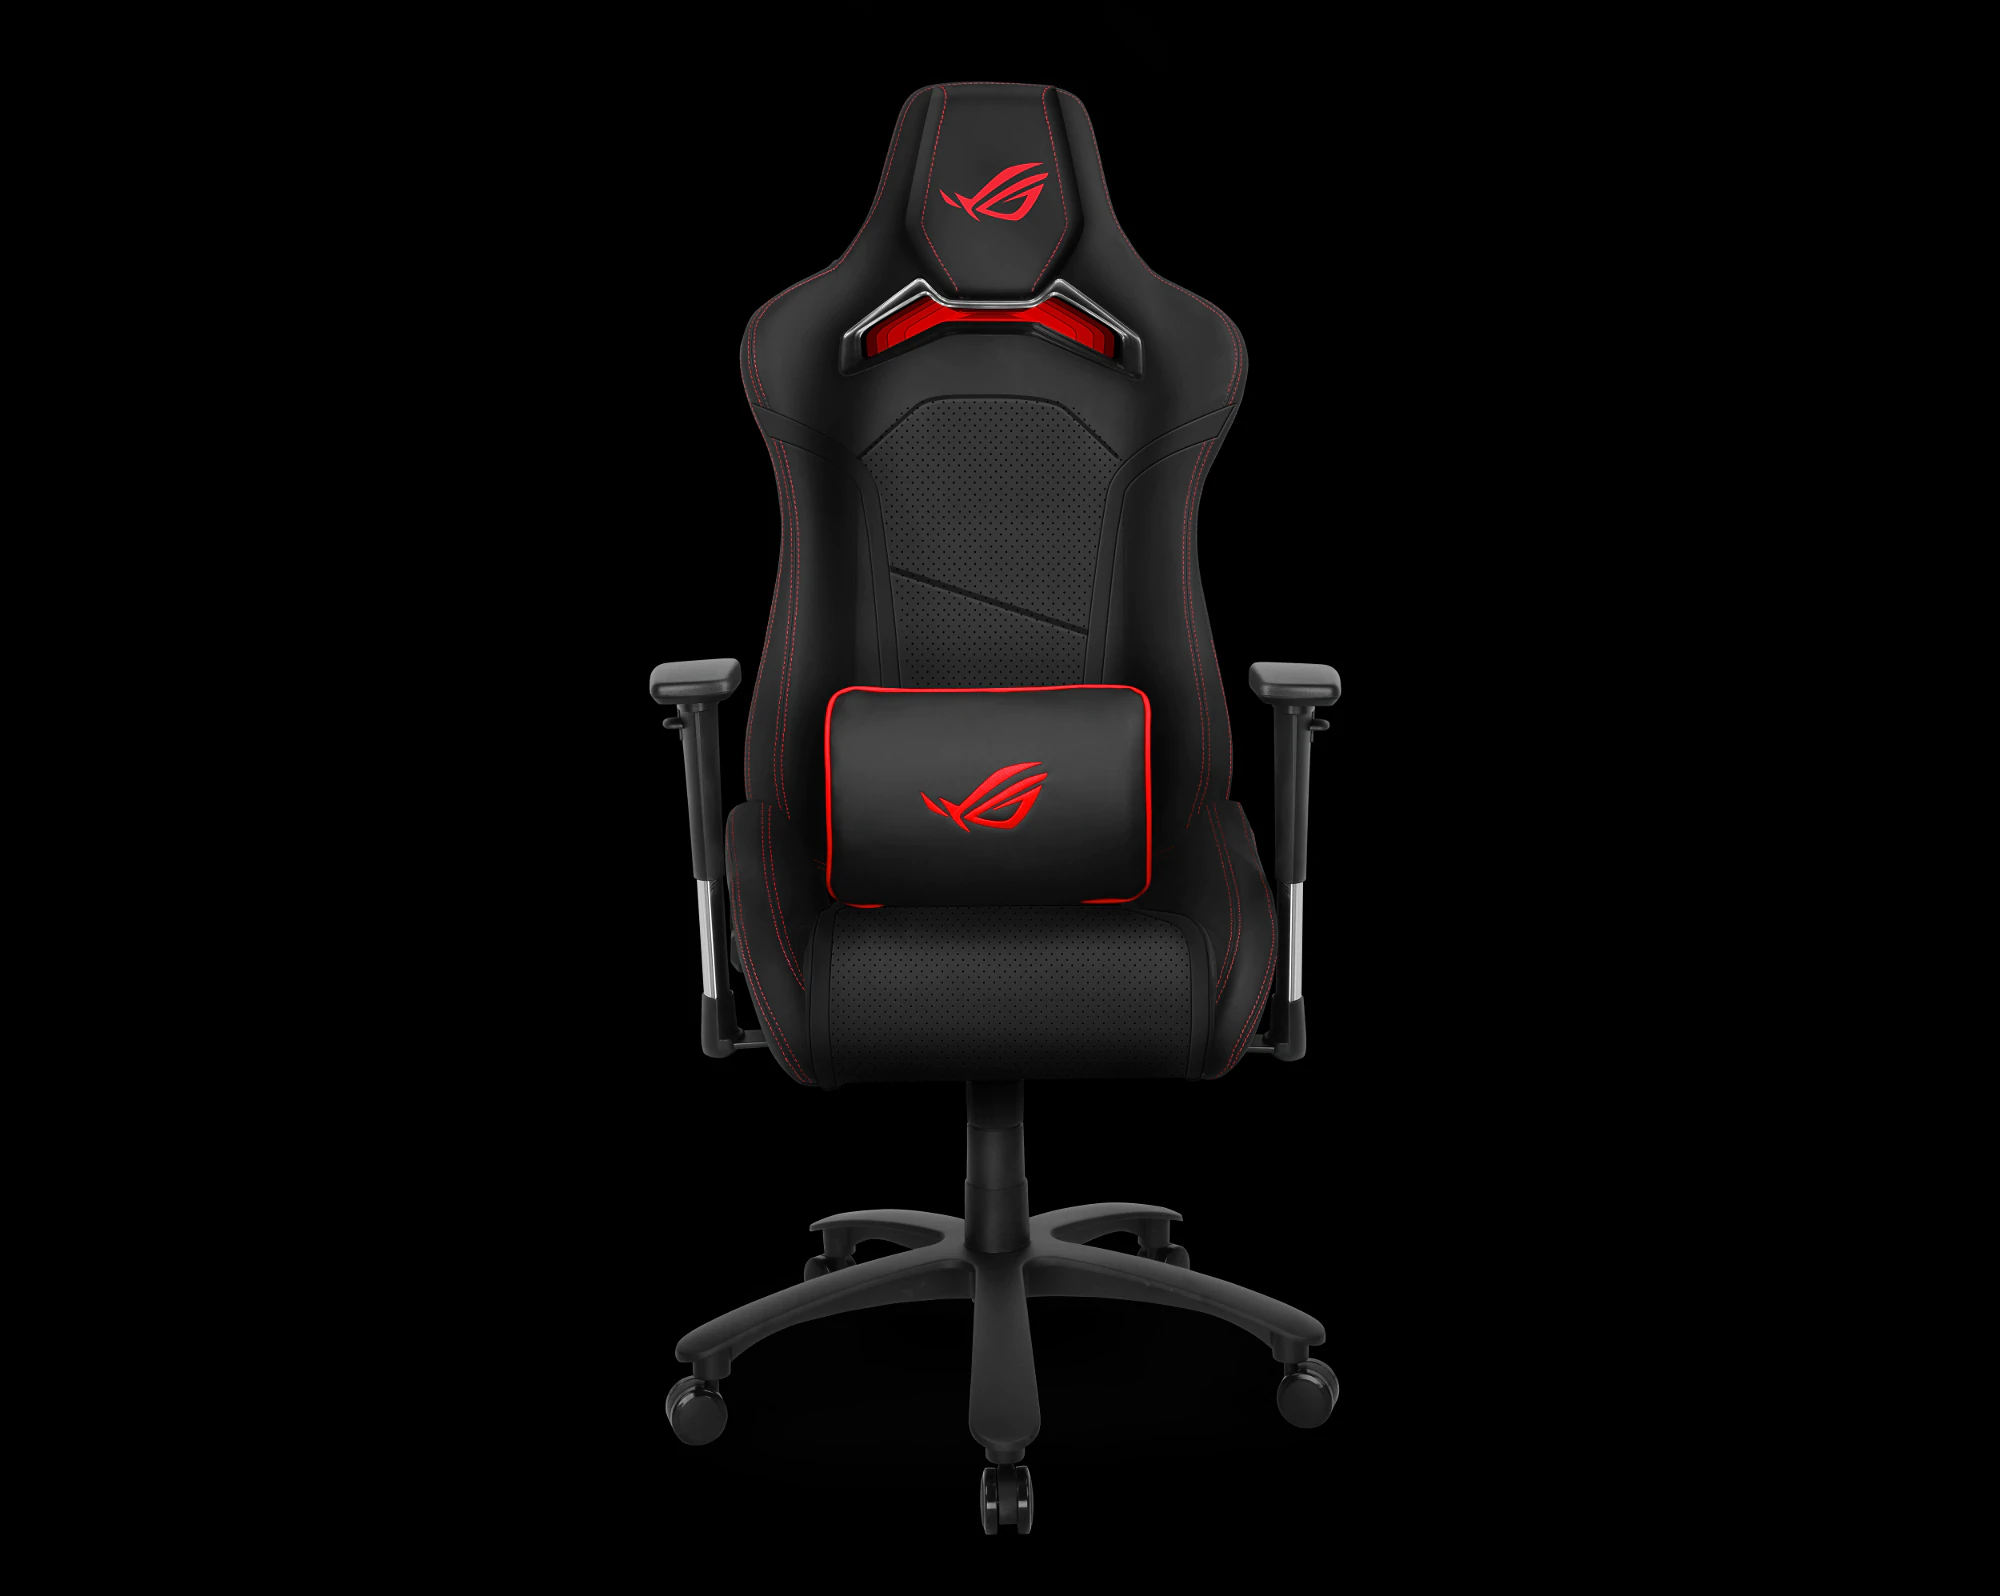 The Asus Rog Chariot Is A Gaming Chair With Rgb Lighting